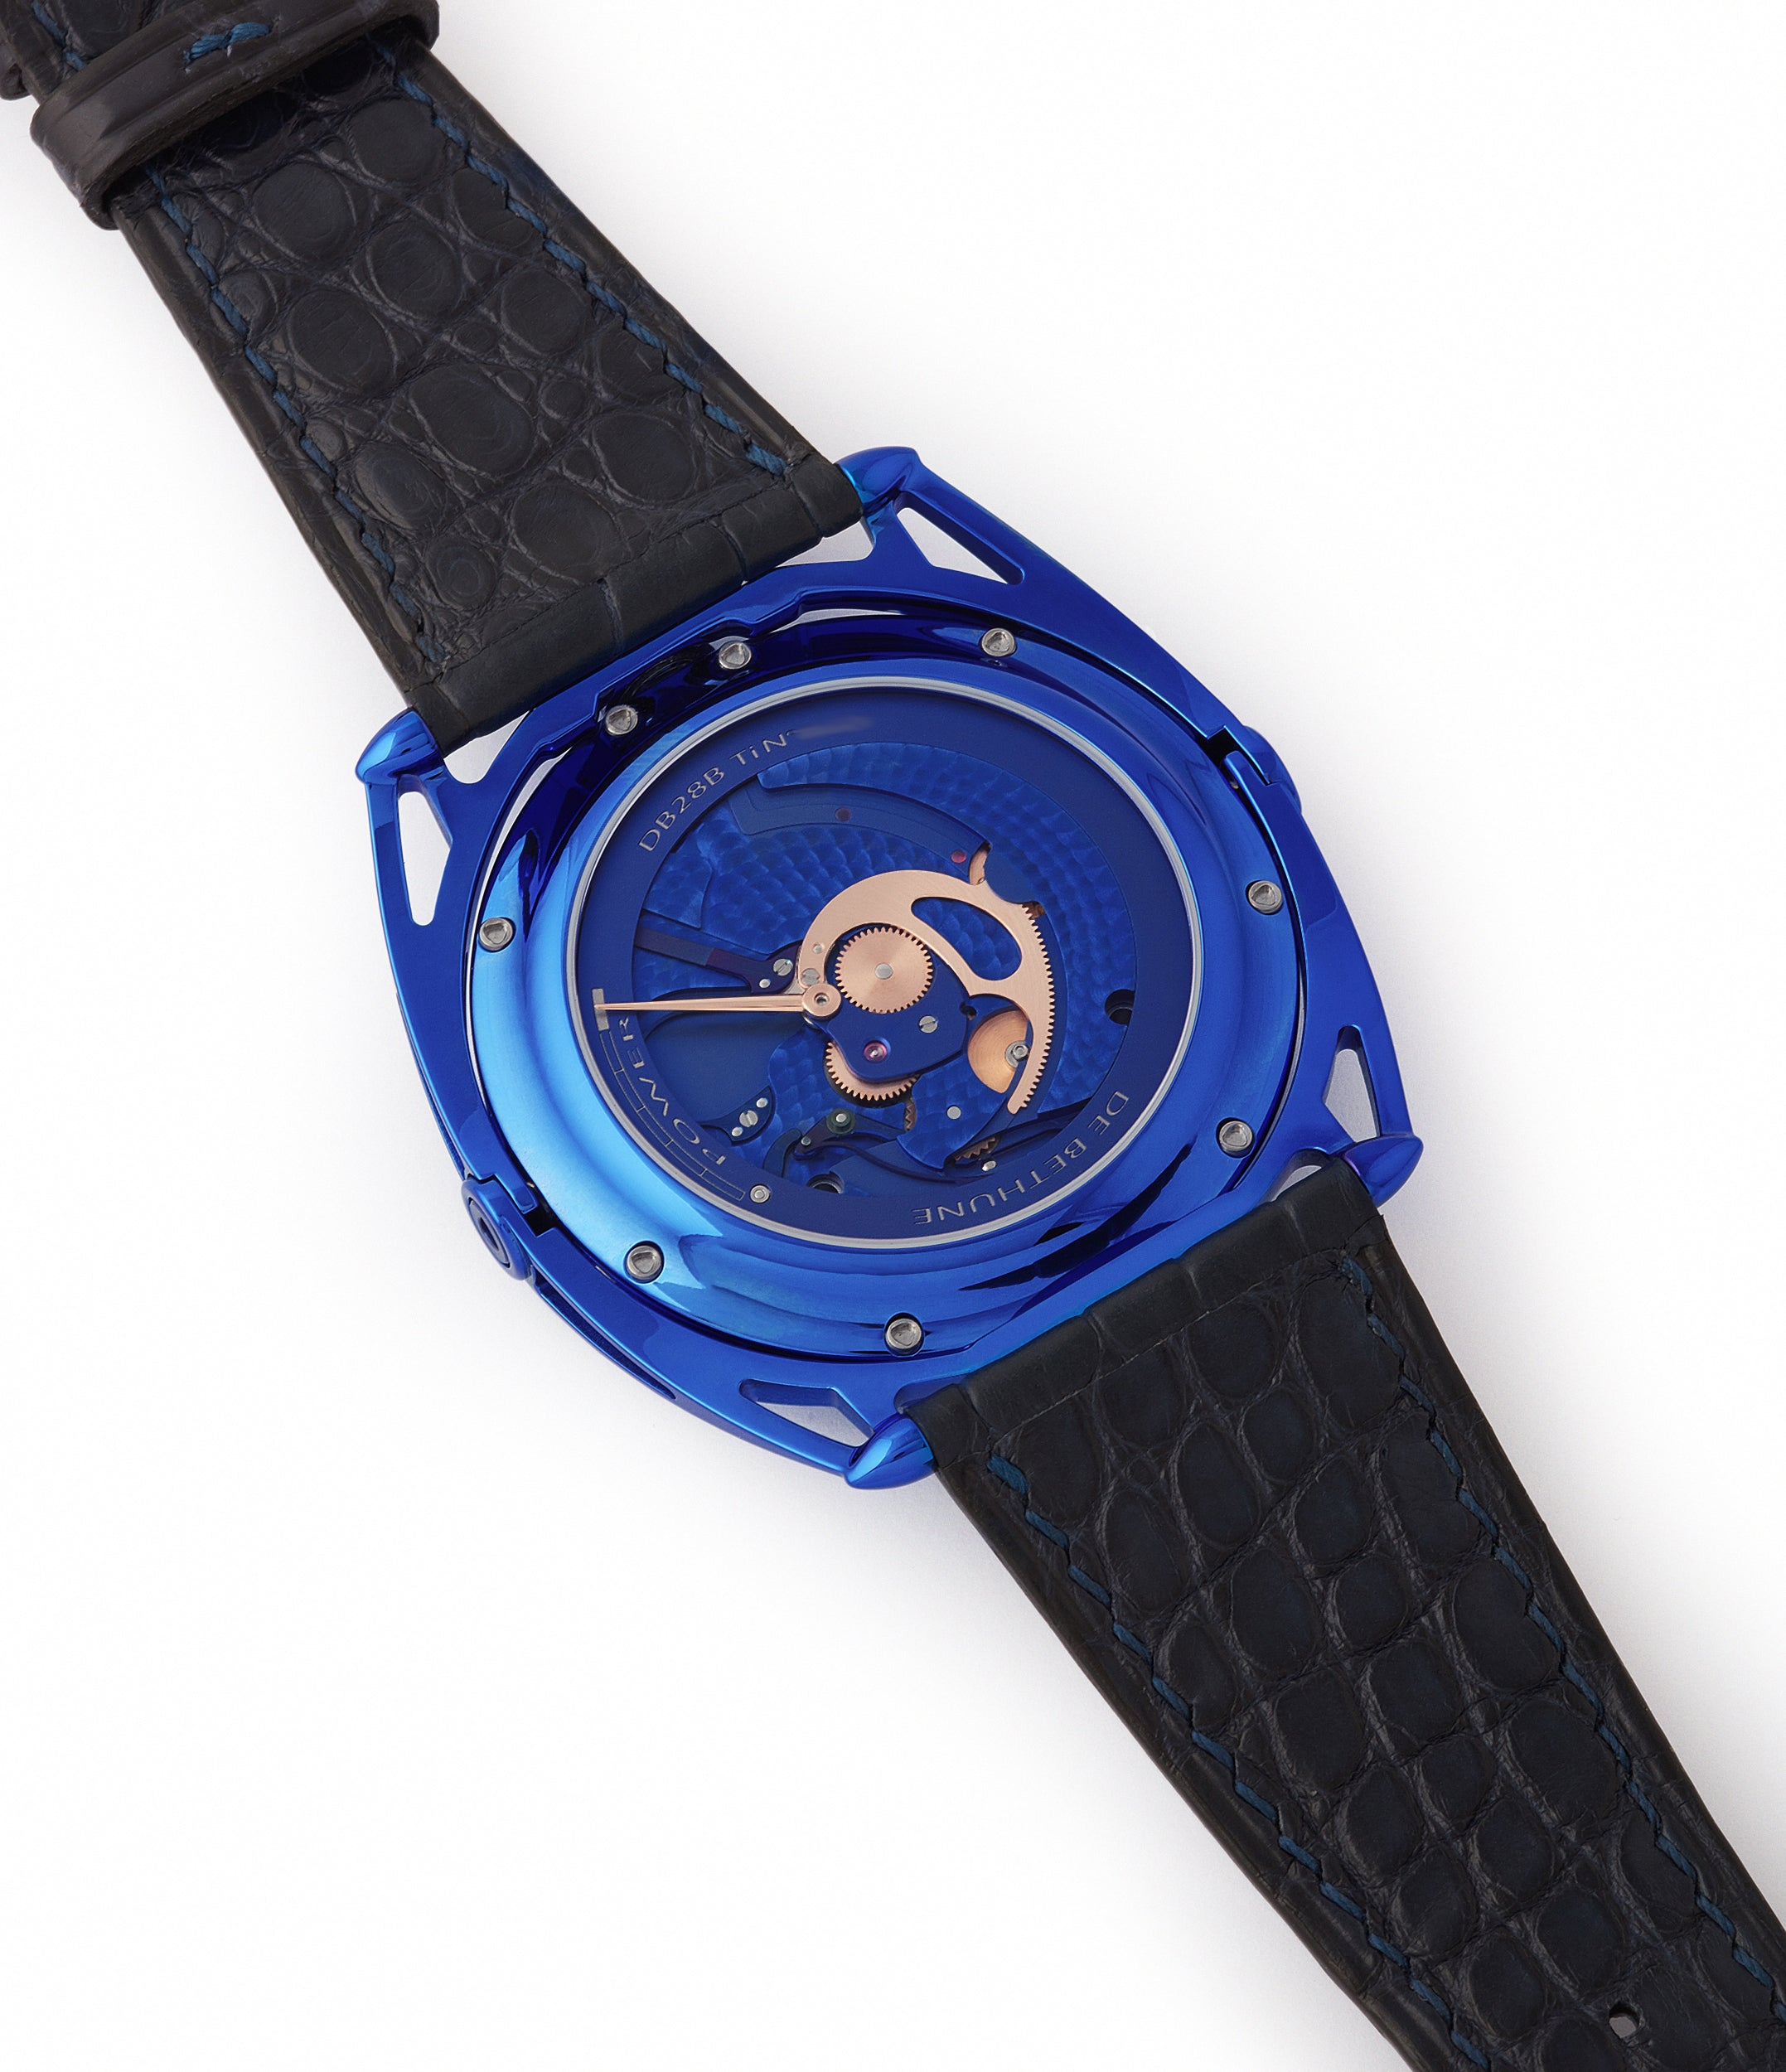 DB2115 De Bethune DB28 Kind of Blue titanium rare limited edition independent watchmaker for sale at A Collected Man London UK specilaist of rare watches